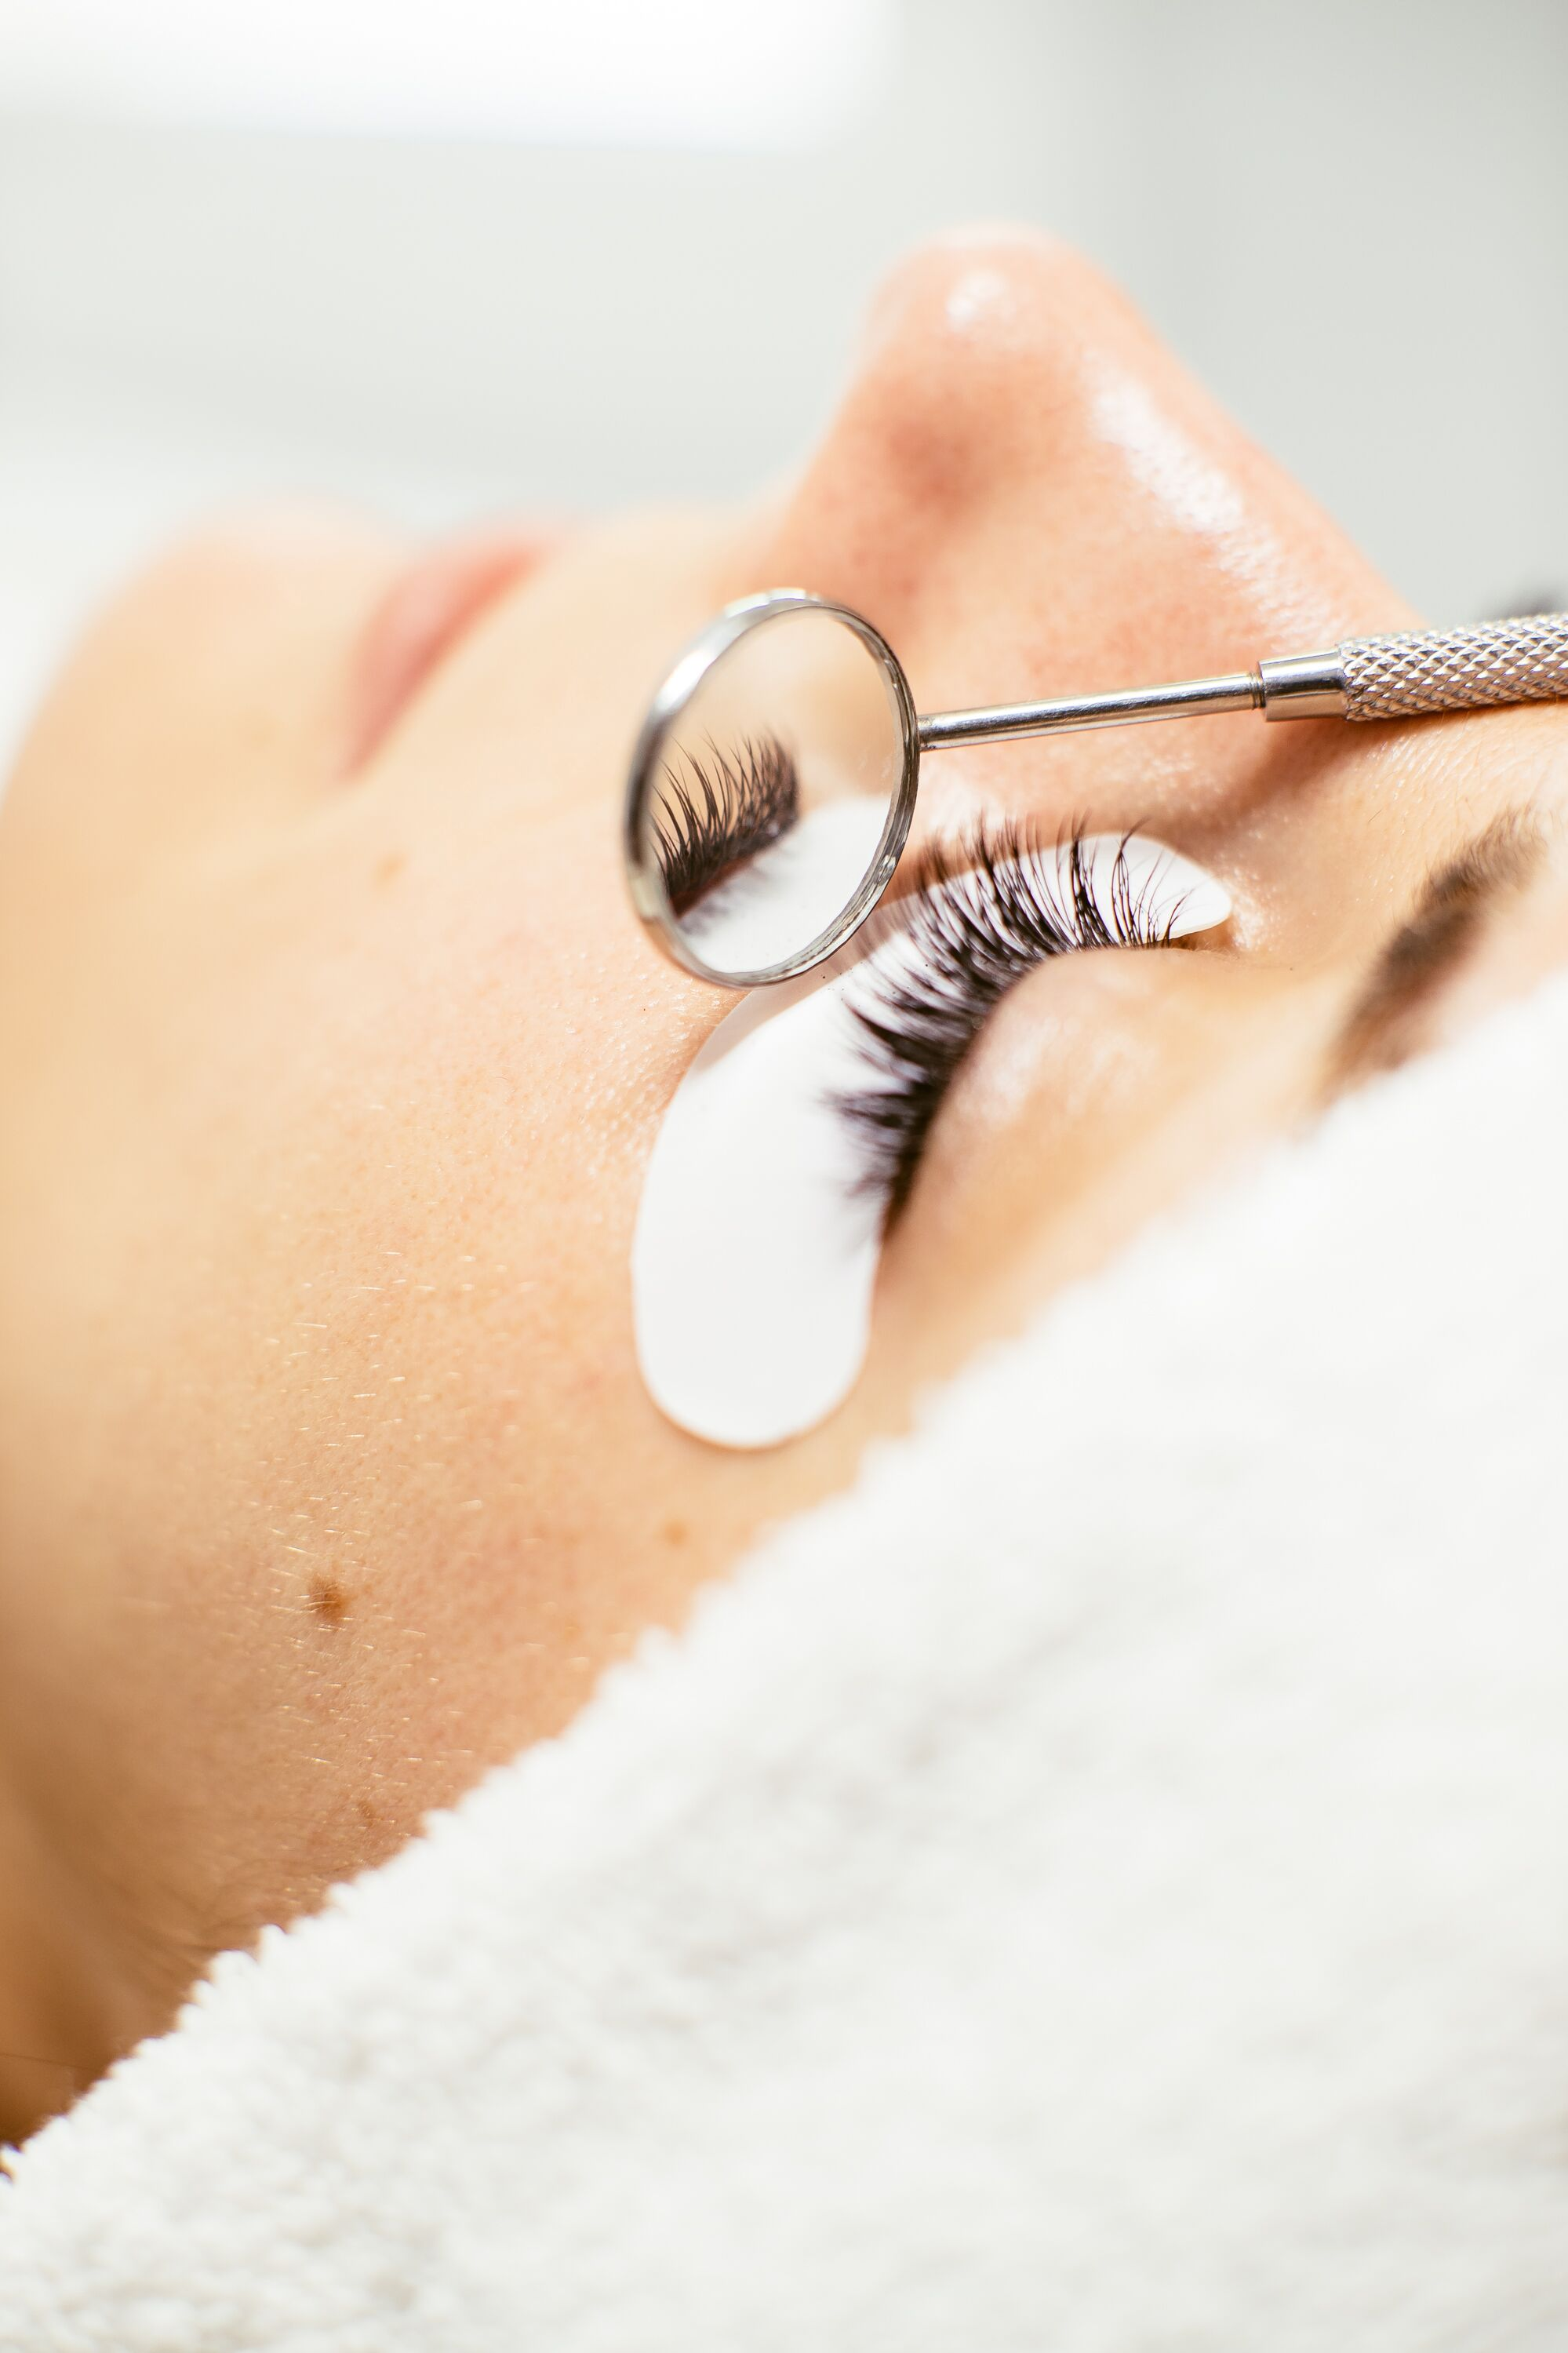 STEP 4: CHECK WORK   At DC Lash Bar, we pride ourselves   in the quality of our work. We use the time dedicated to your service to achieve your desired look without compromising quality results.